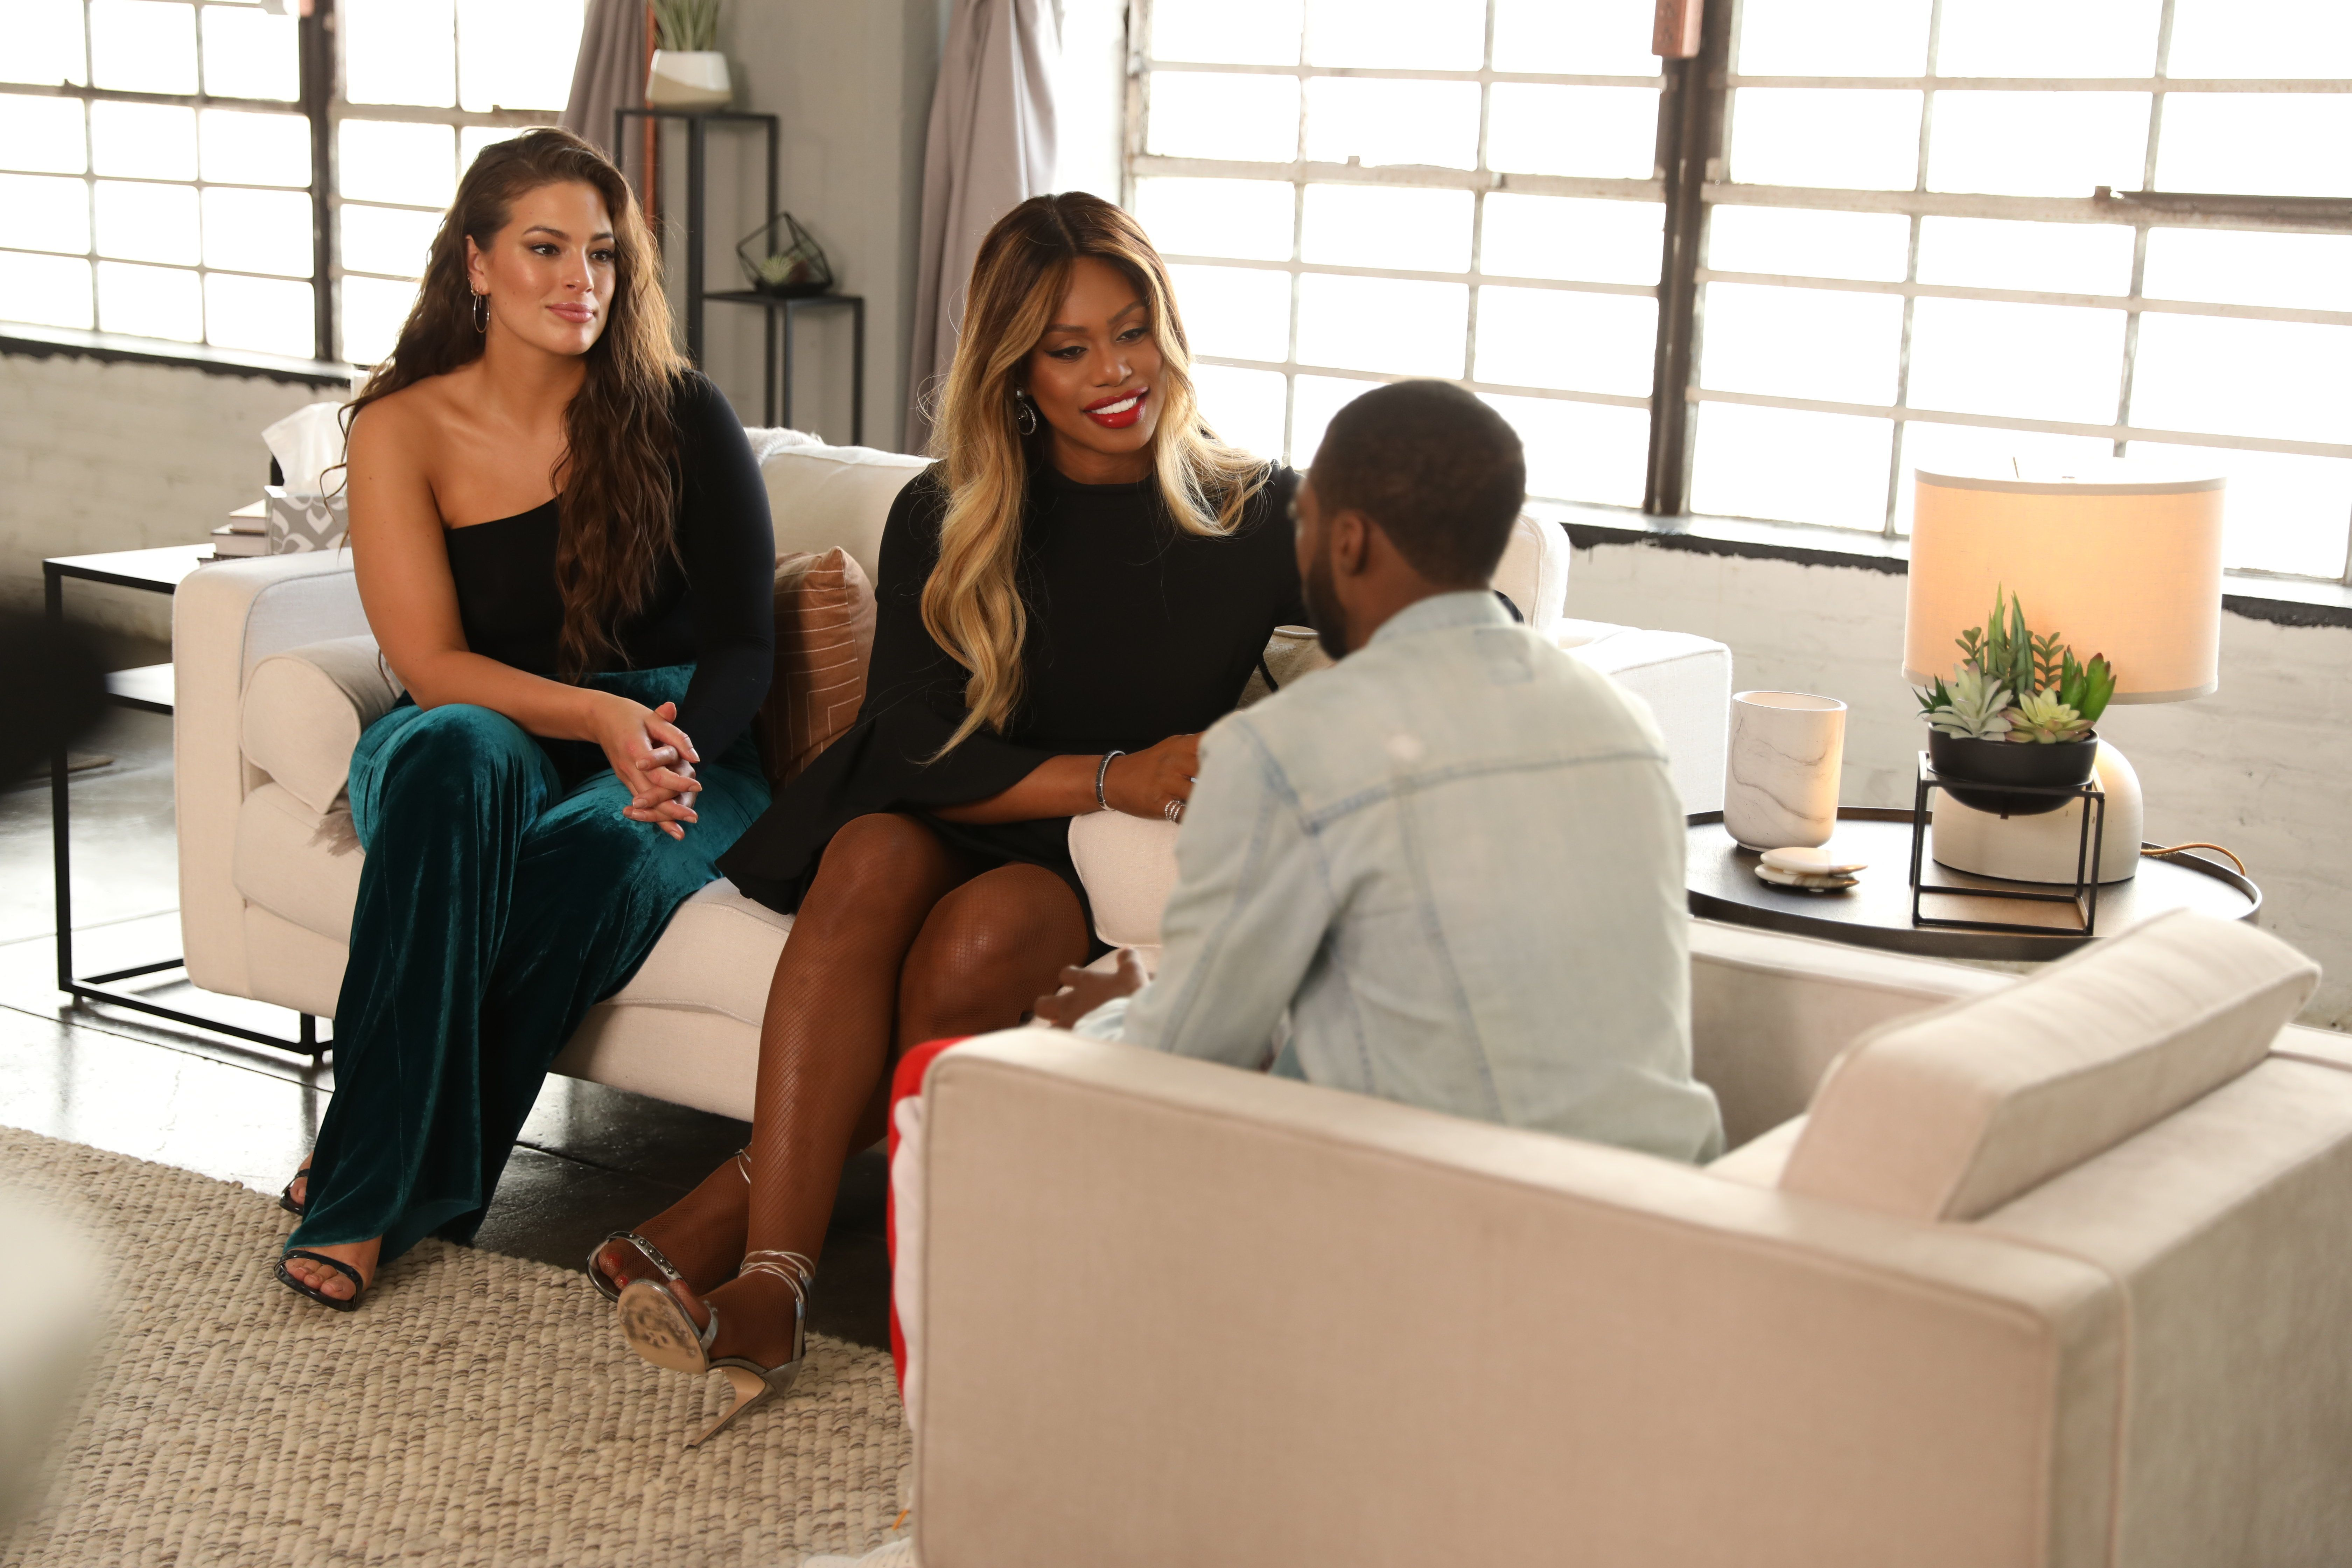 Laverne Cox Surprises Transgender Man Who's Never Met Another Openly Trans